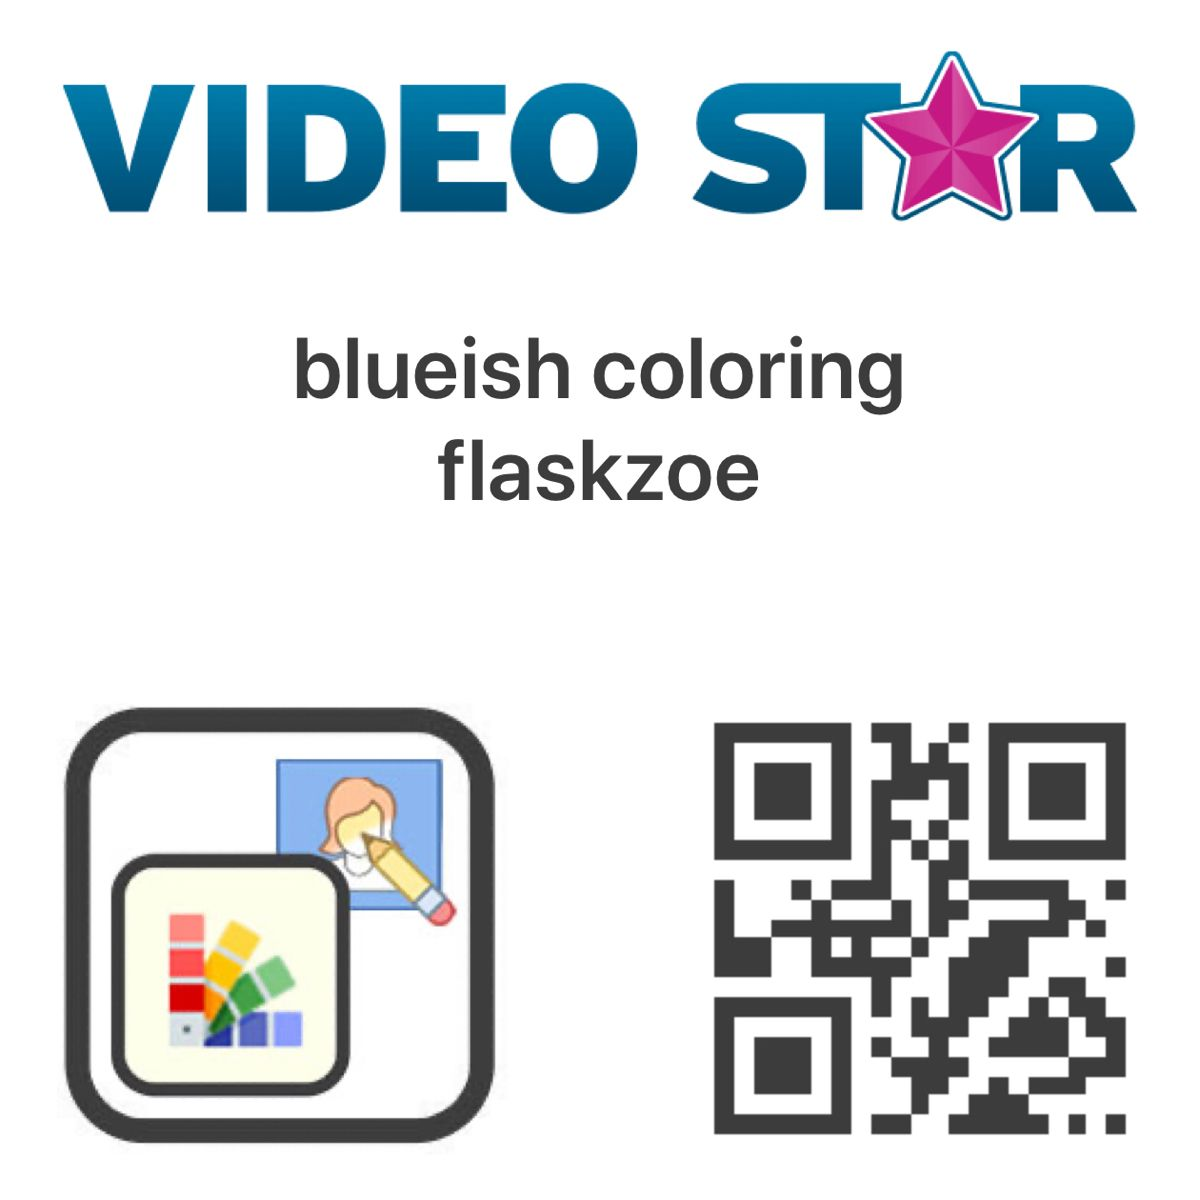 qr code robux Coloring Qr Code In 2020 Coding Video Editing Apps Editing Apps